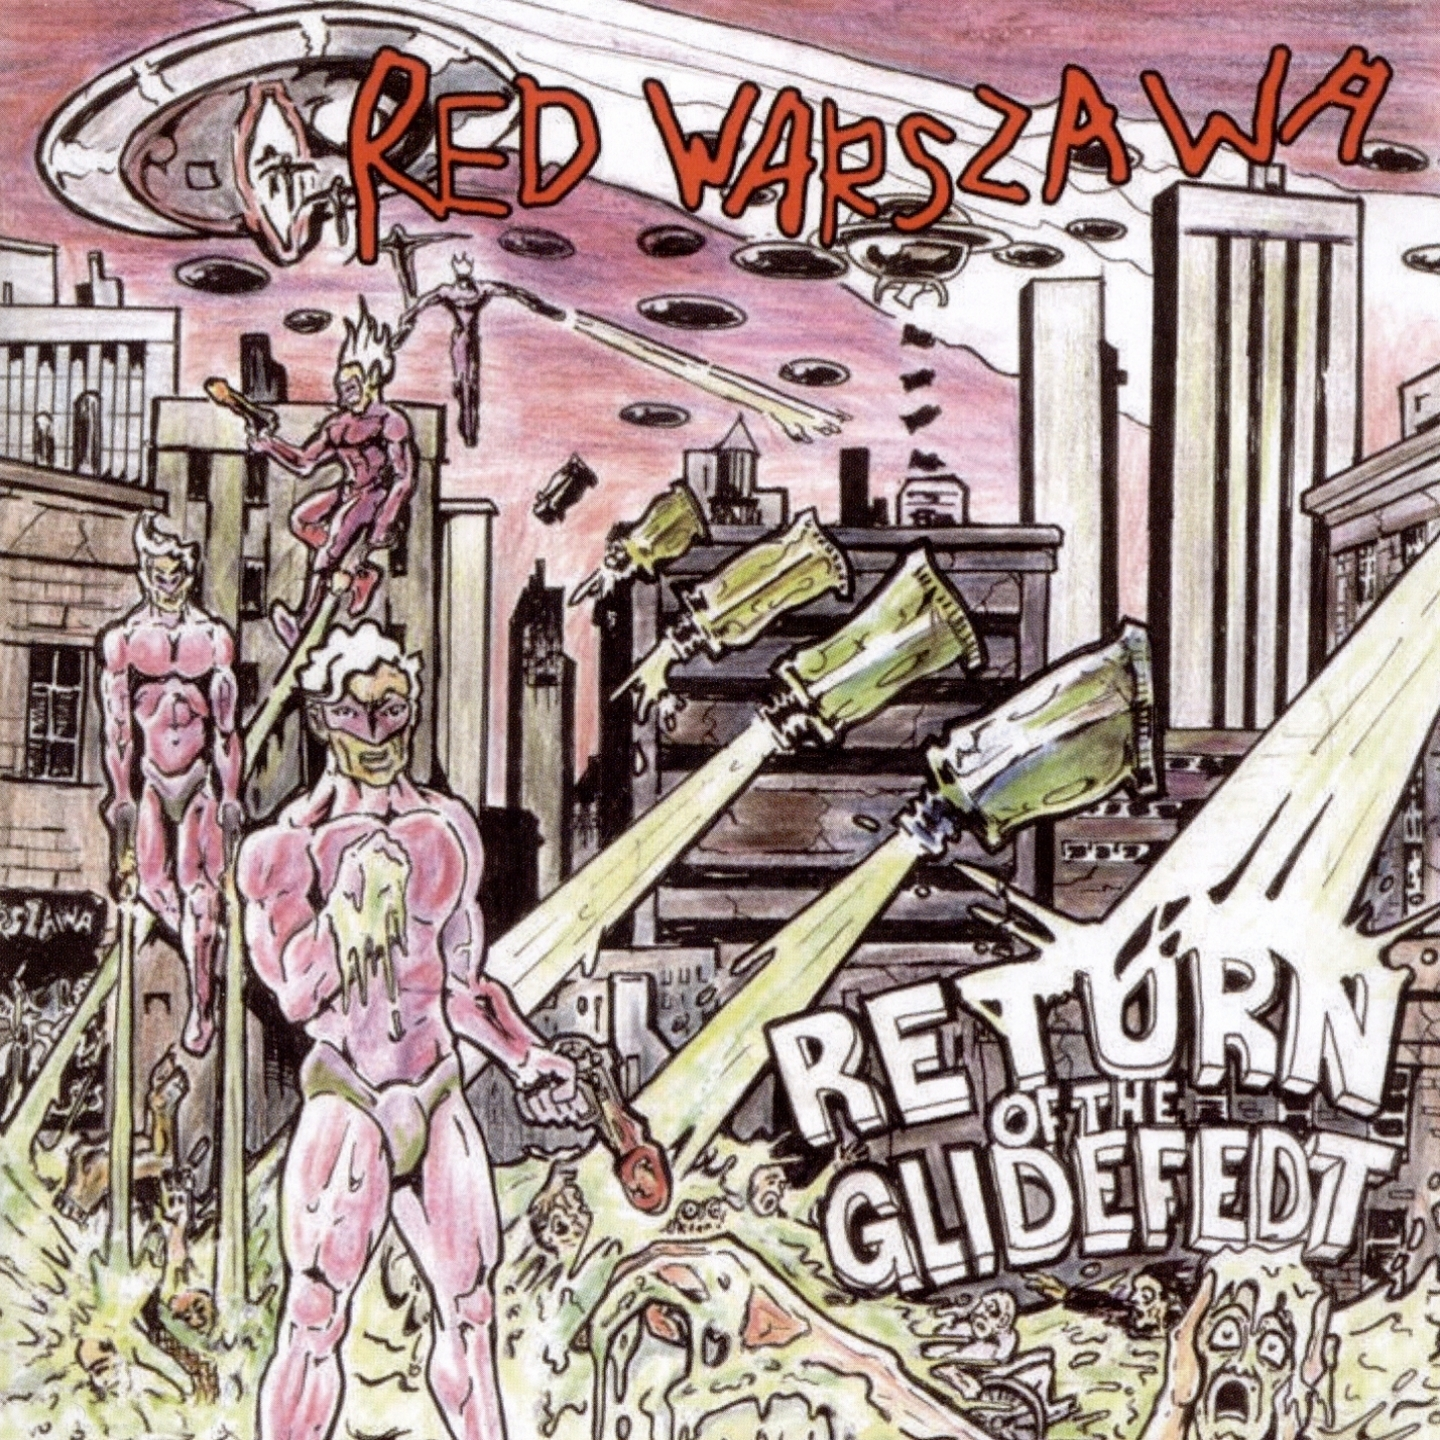 Red Warszawa	– 'Return Of The Glidefedt' (Album)